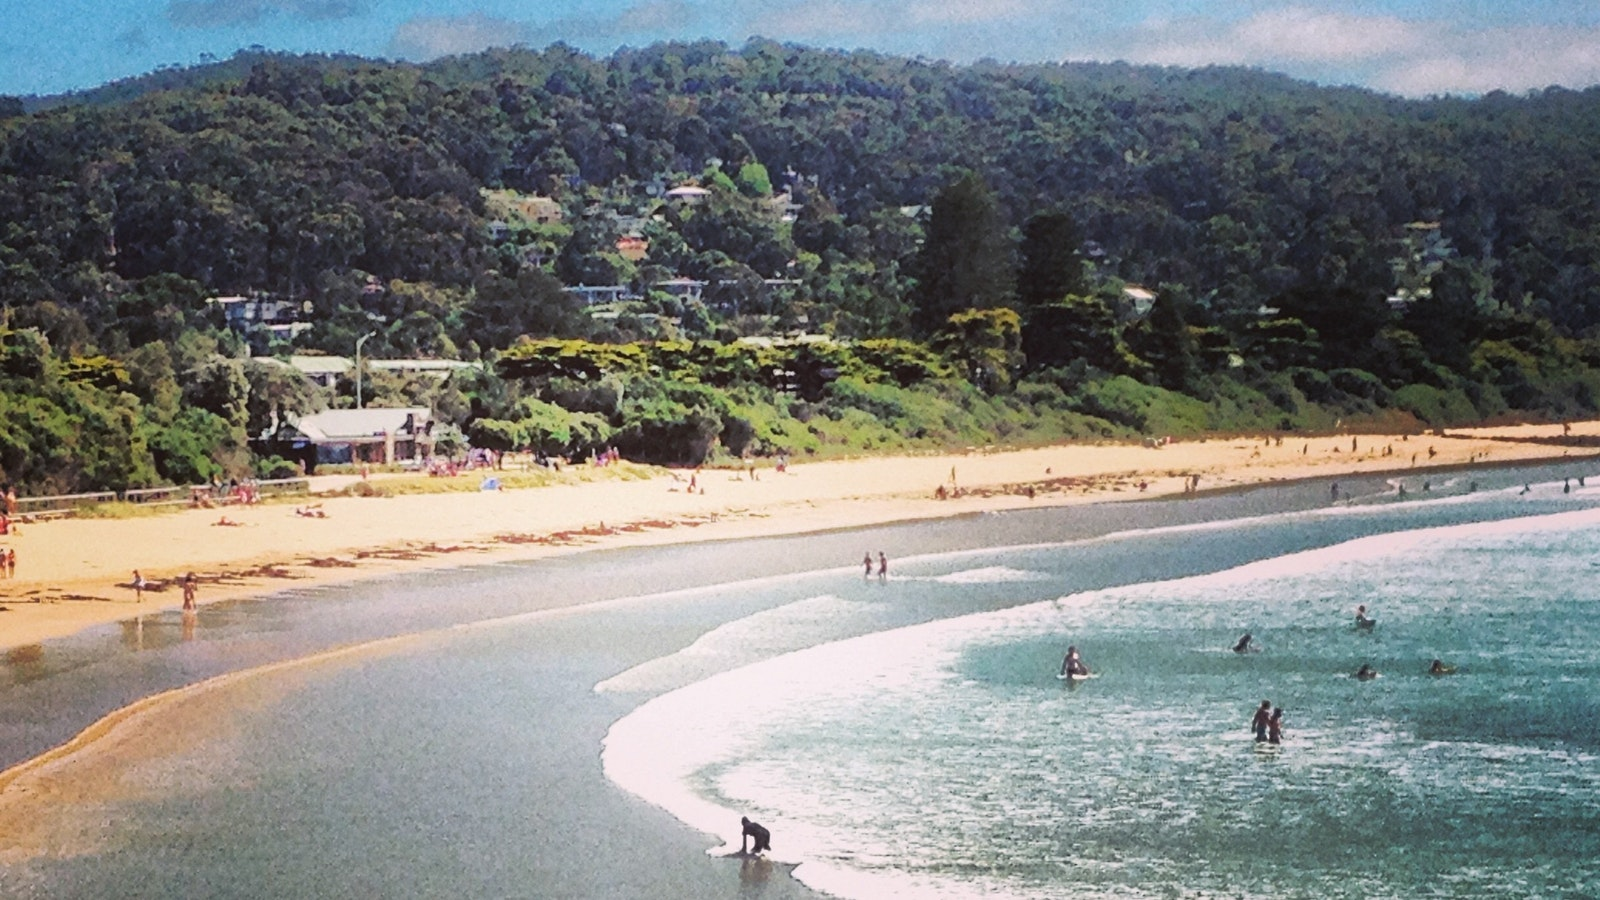 Lorne township and beach. One of the Great Ocean Road's crown jewels.